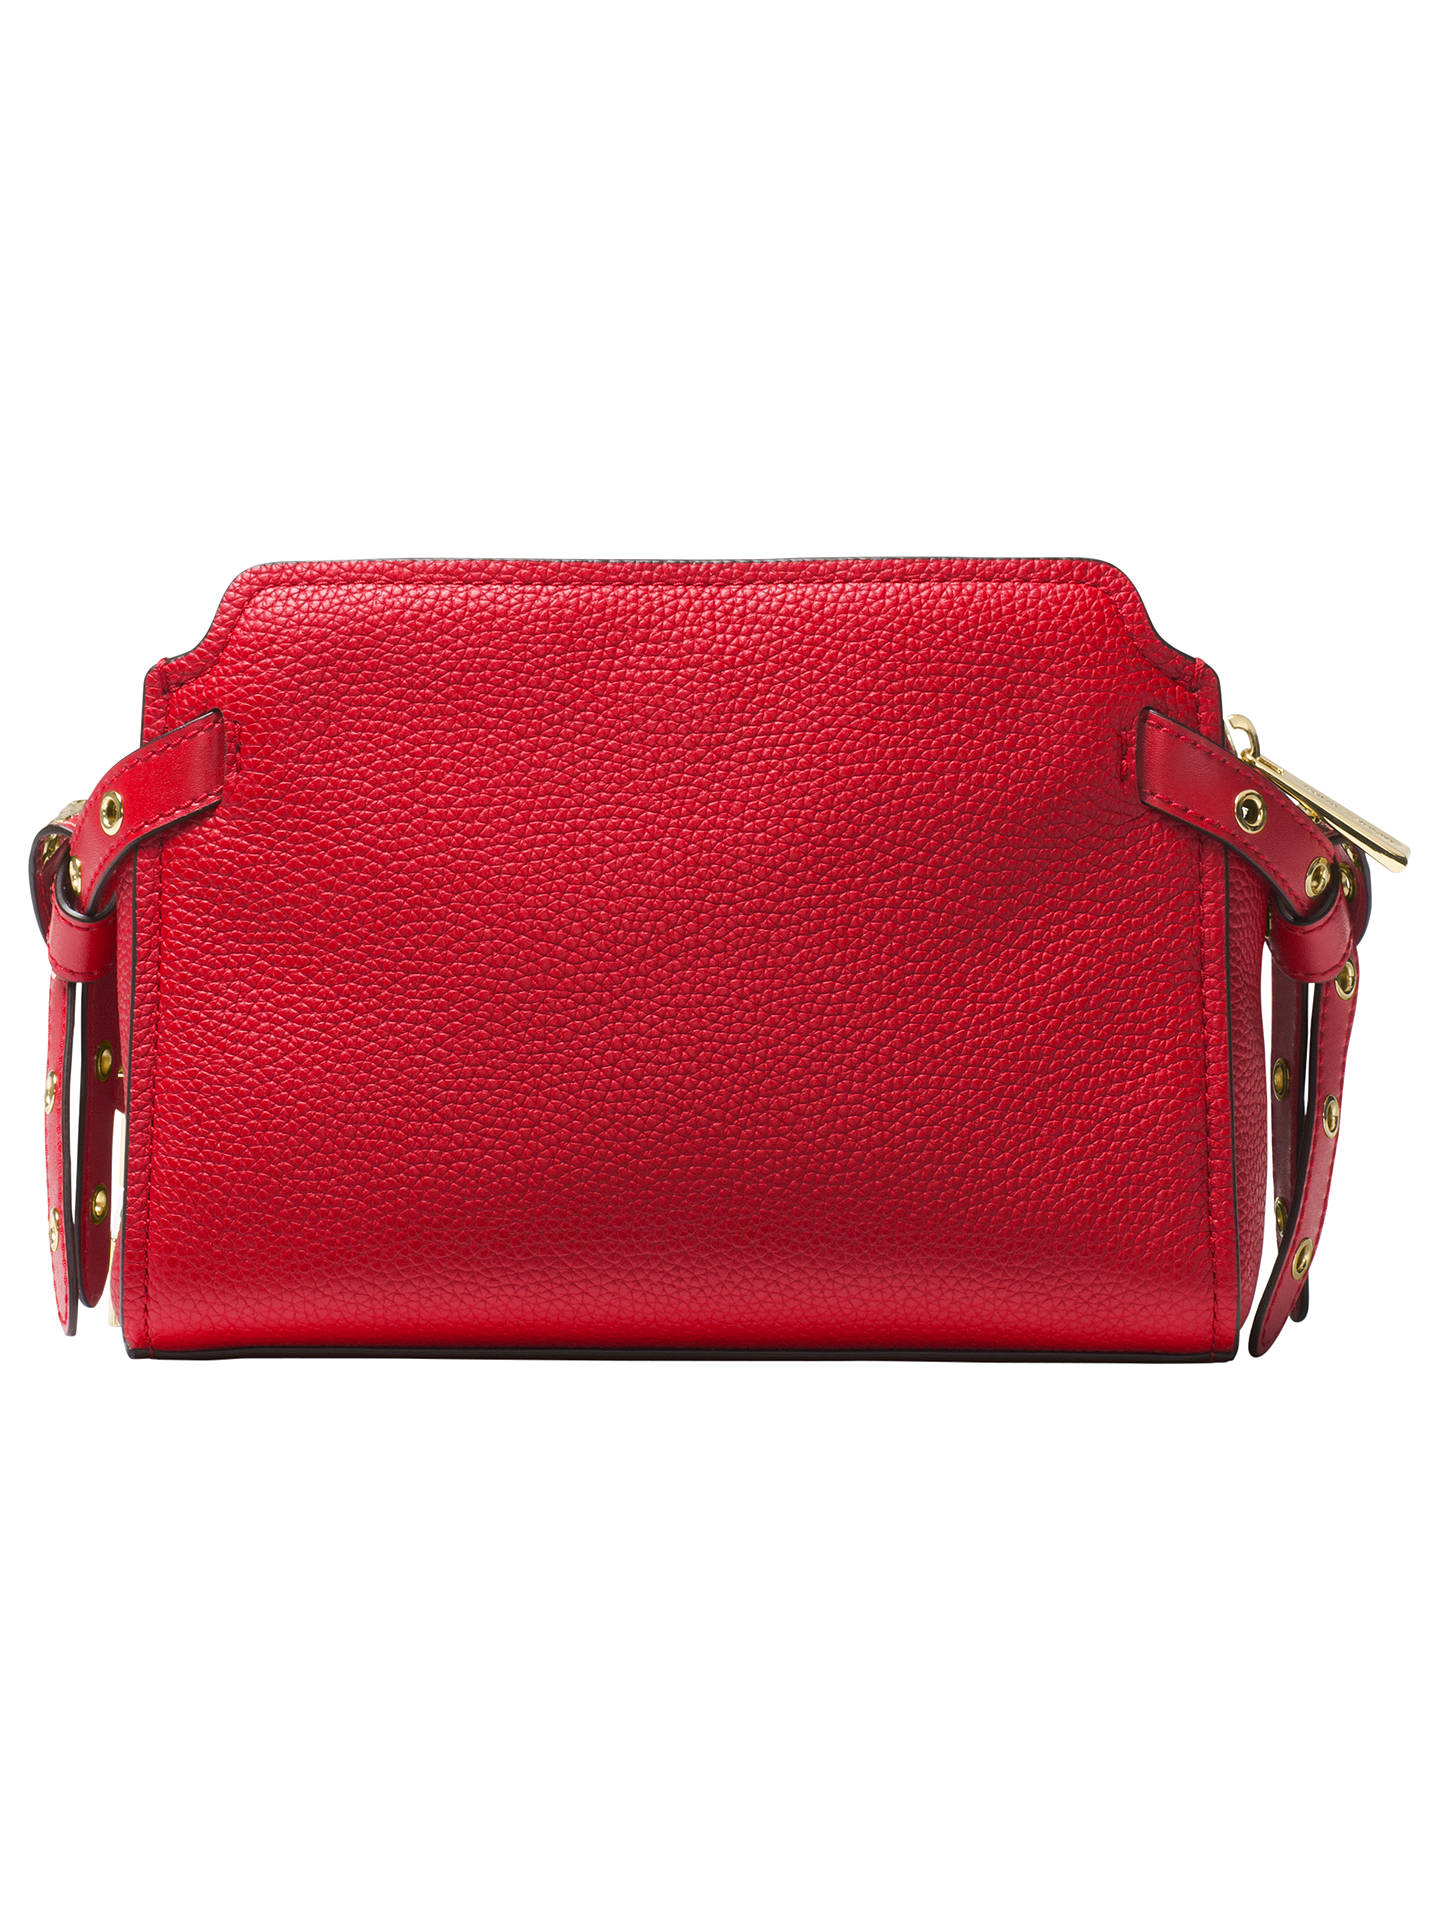 Michael Kors Bristol Leather Shoulder Bag Bright Red Online At Johnlewis